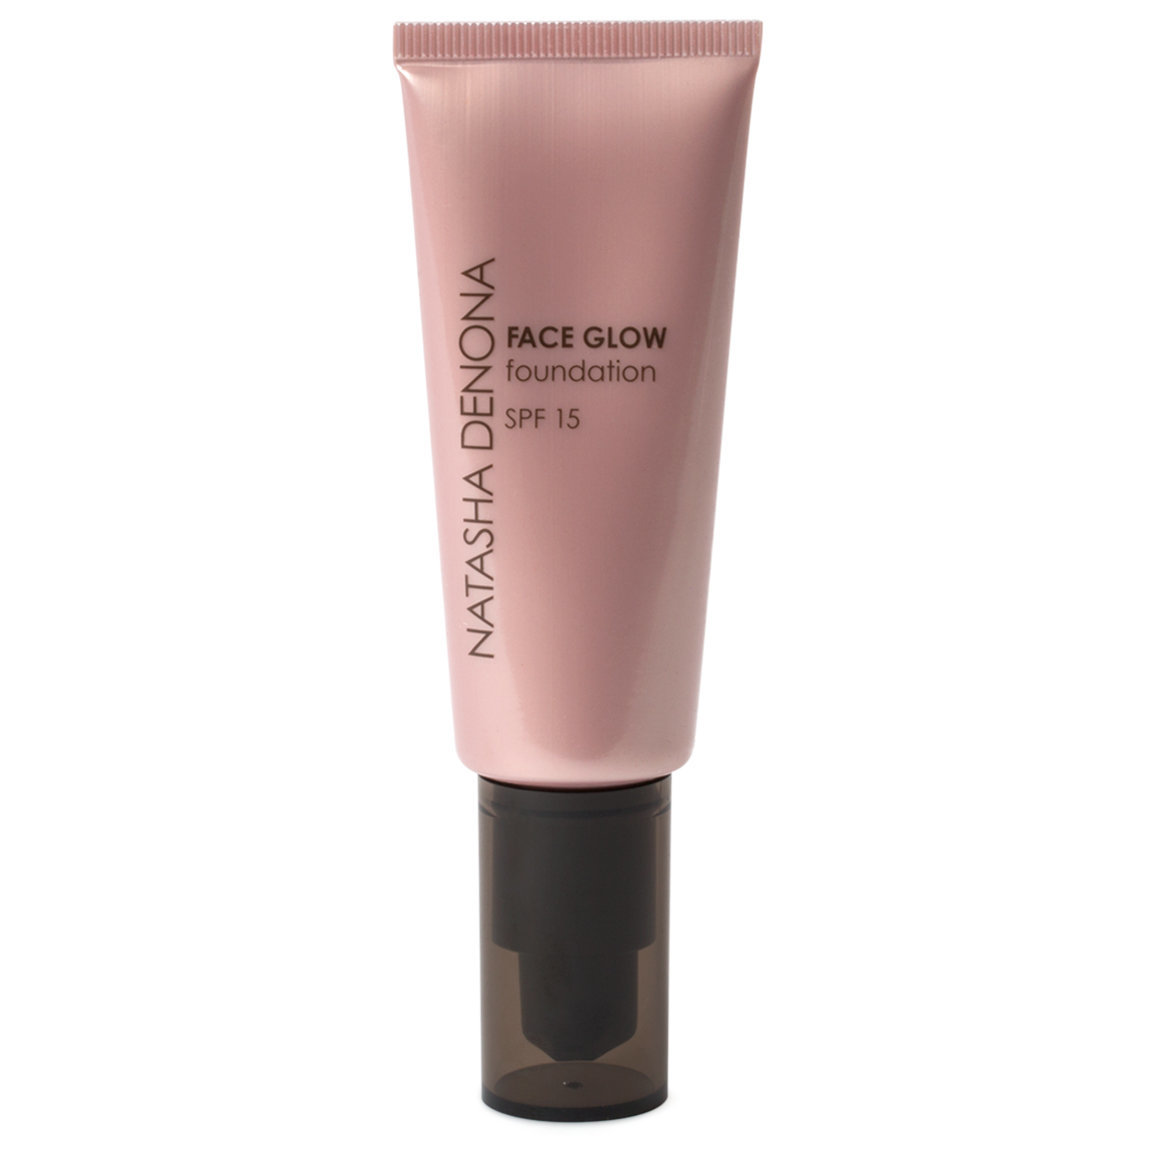 Natasha Denona Face Glow Foundation 10 - Neutral Porcelain